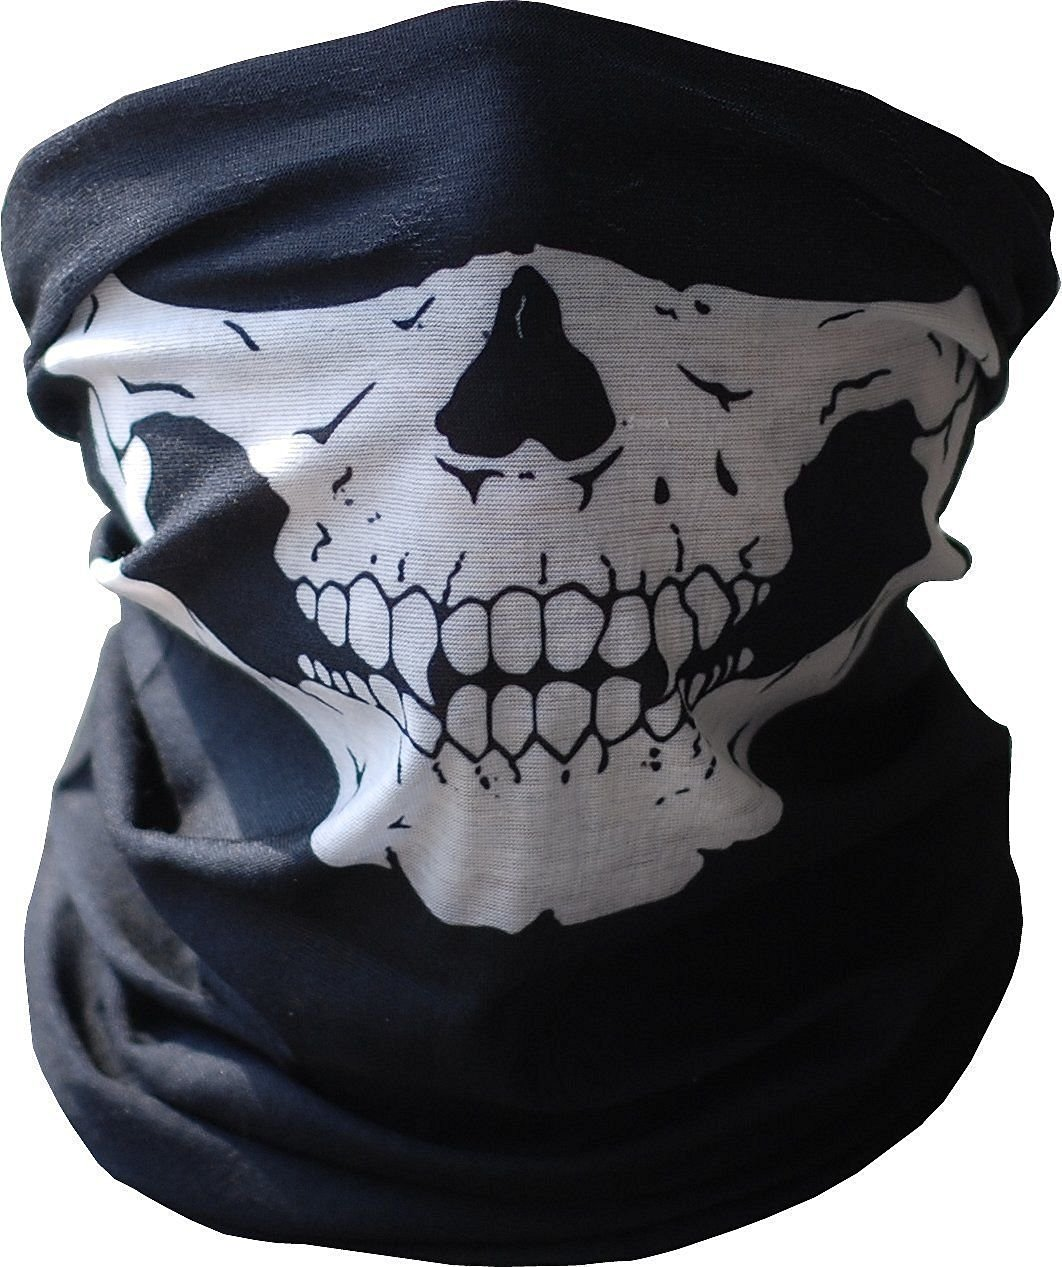 Cheap Call Of Duty Ghost Costume For Kids Find Call Of Duty Ghost